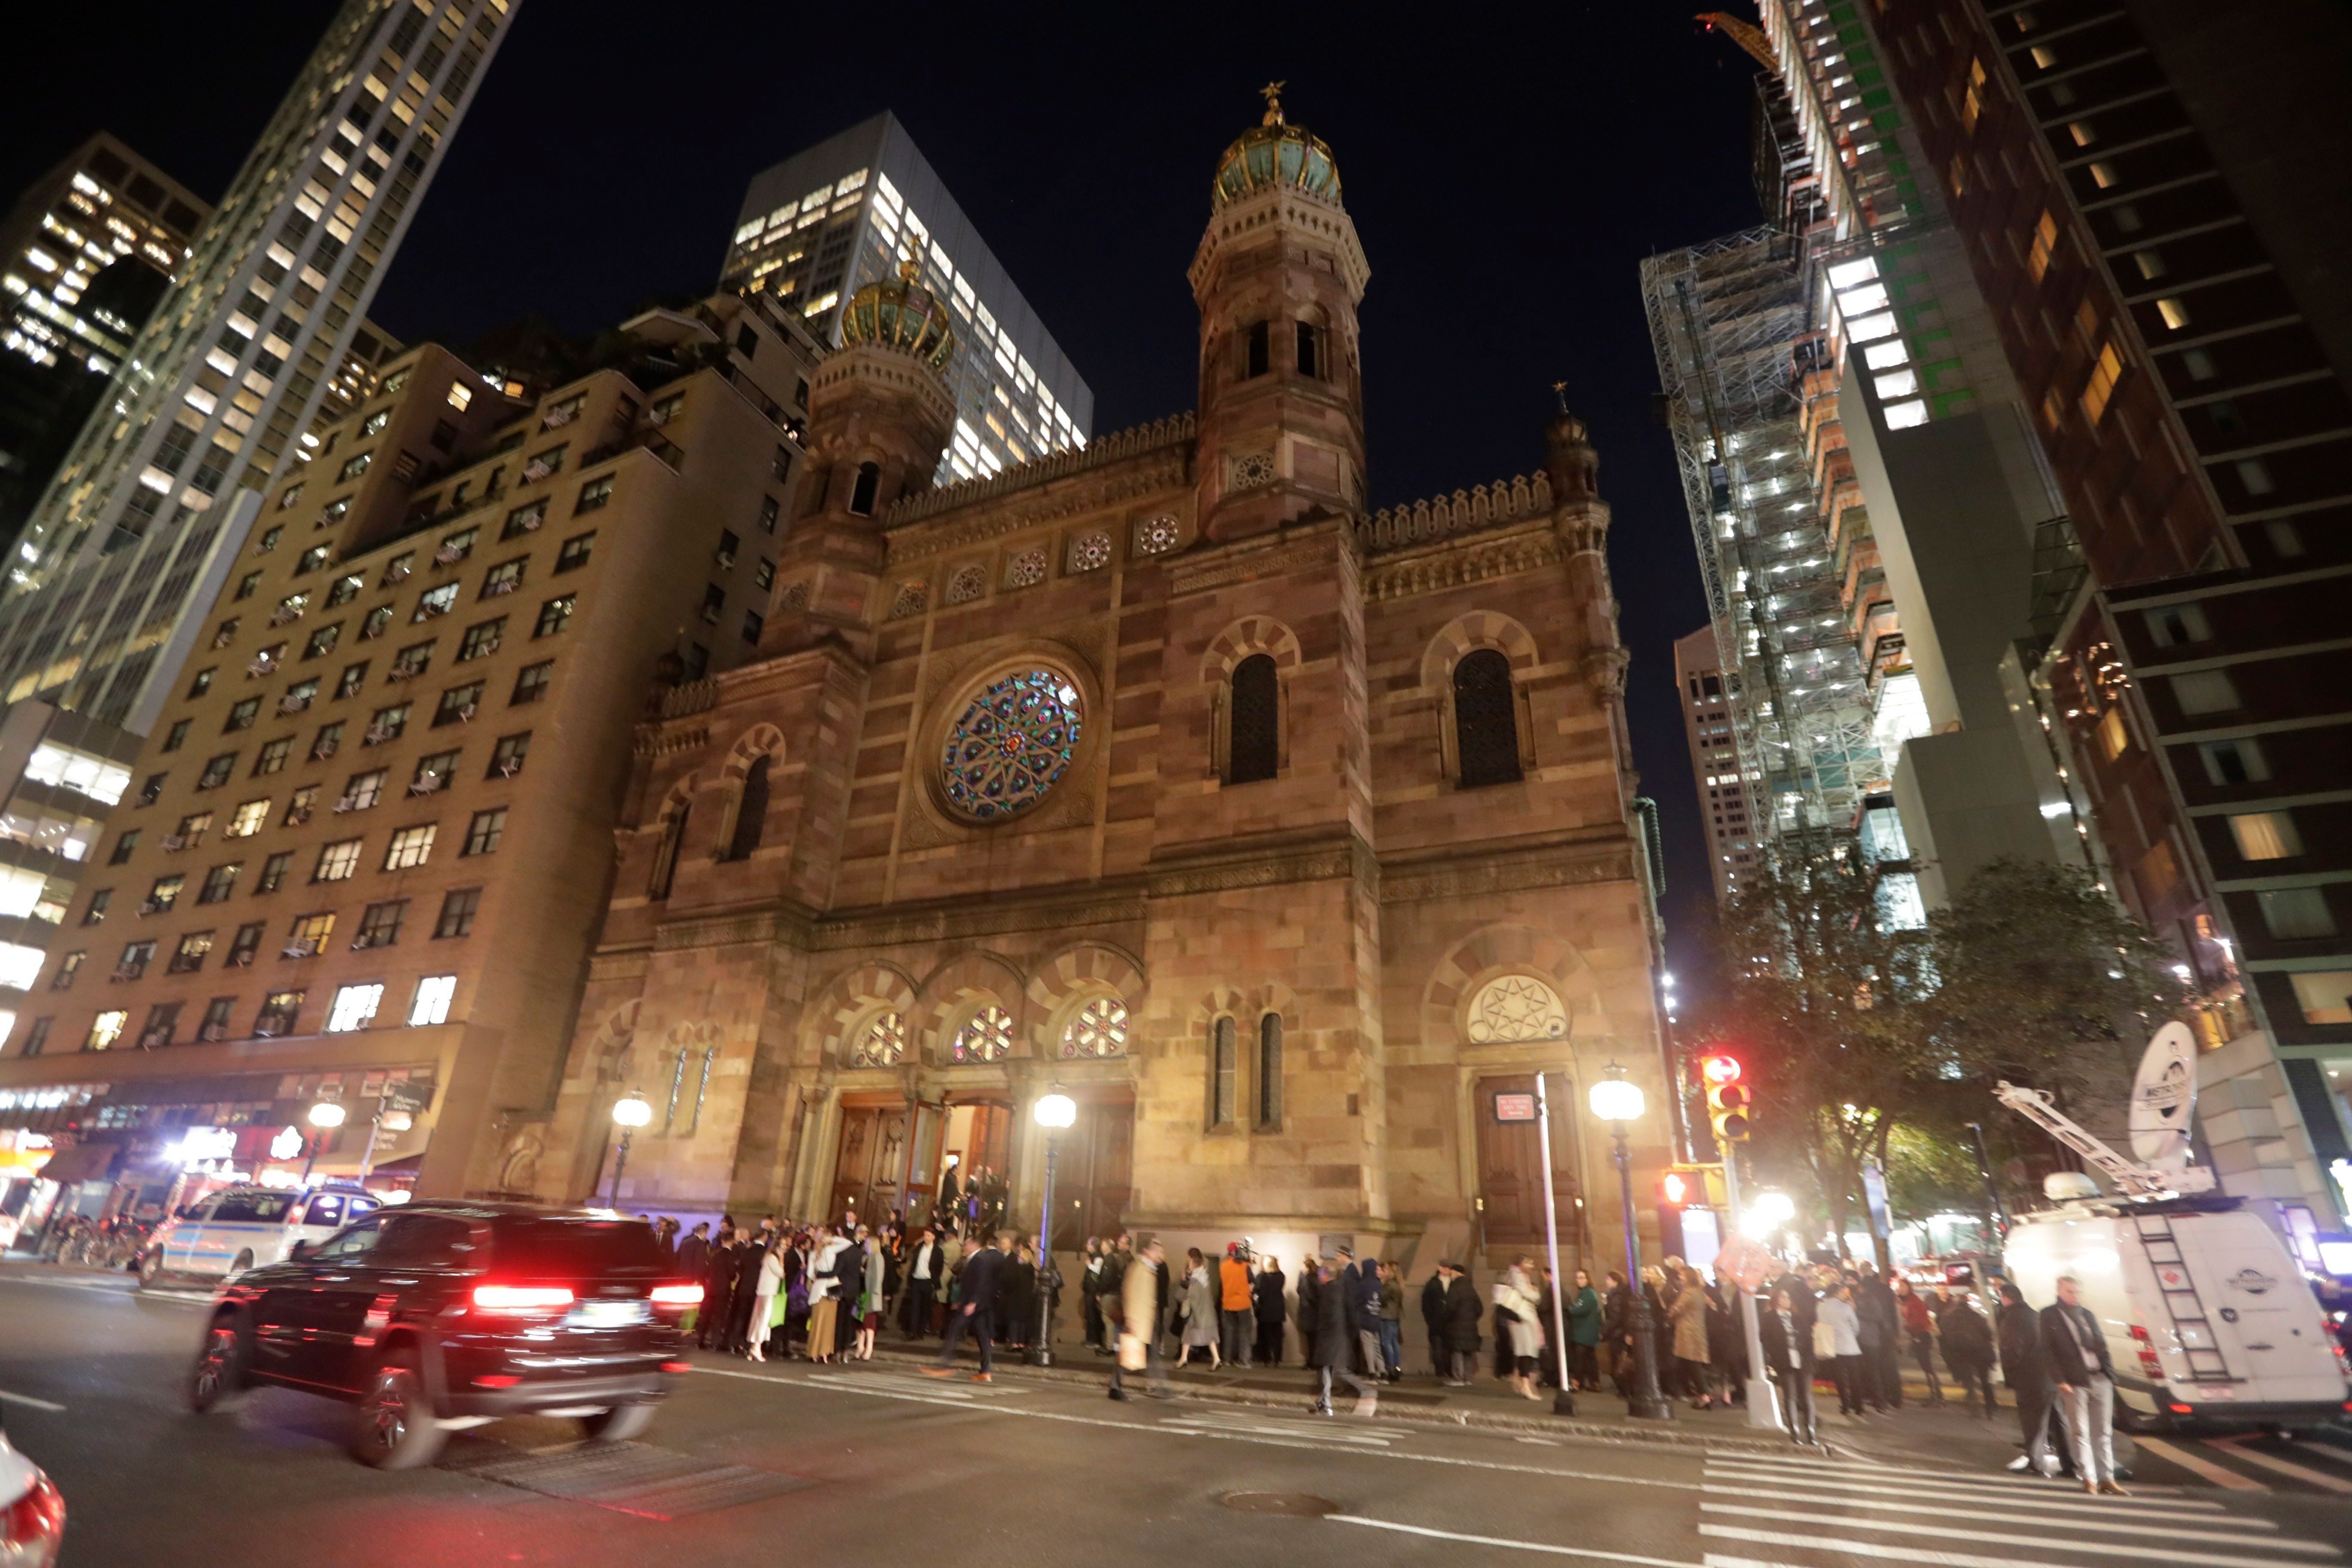 Central Synagogue is a historic Reform Jewish congregation located in midtown